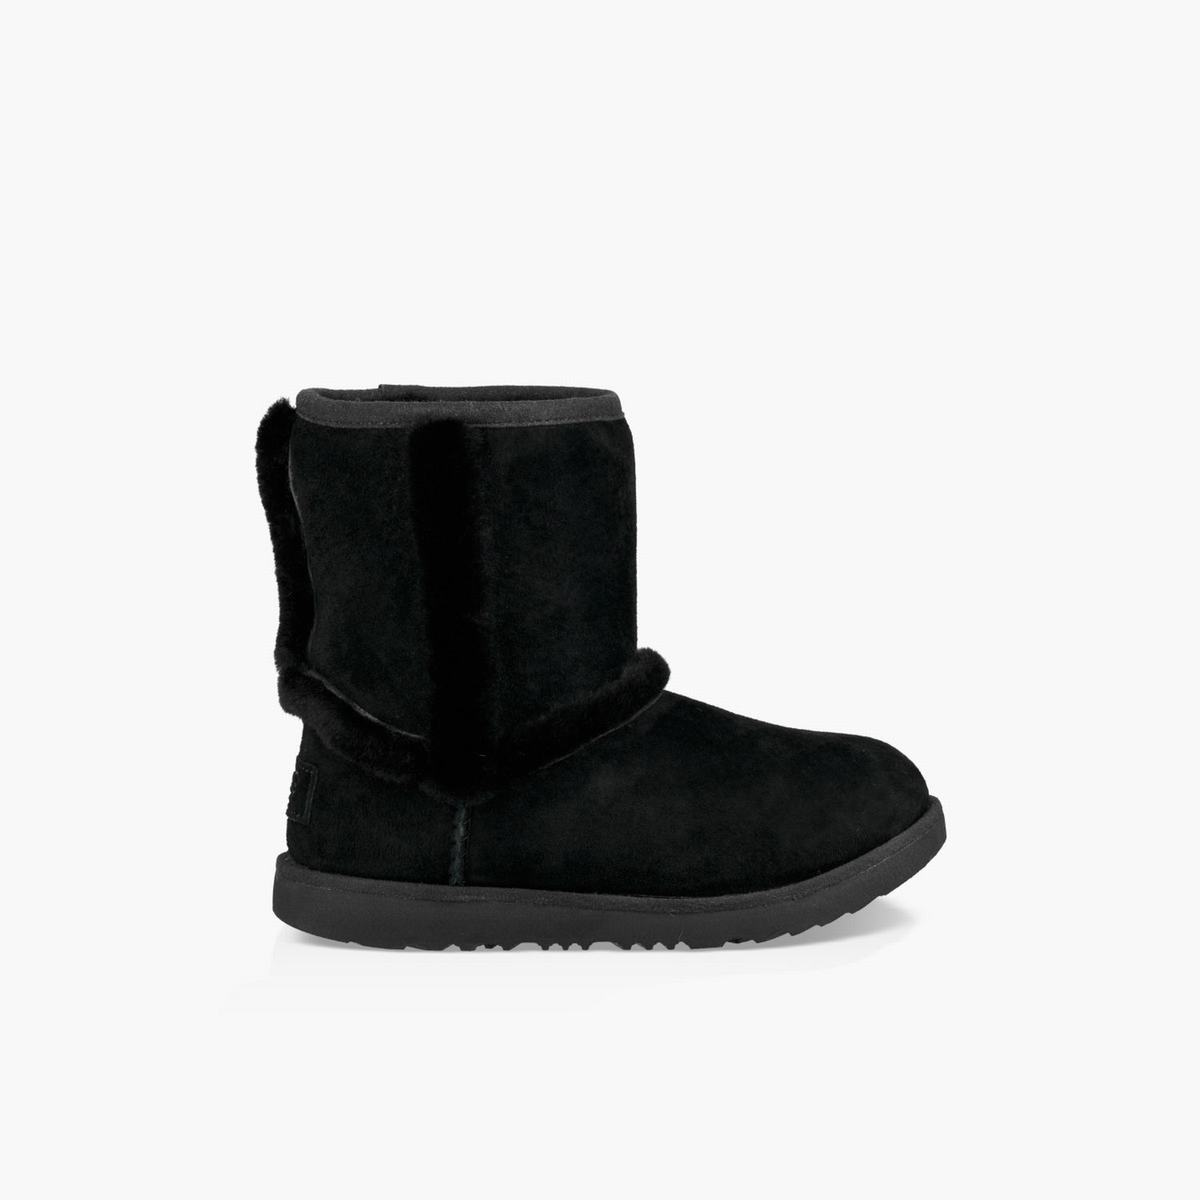 Girls UGG Hadley II Wp Boot Black Boots New Zealand, 401GVHPA